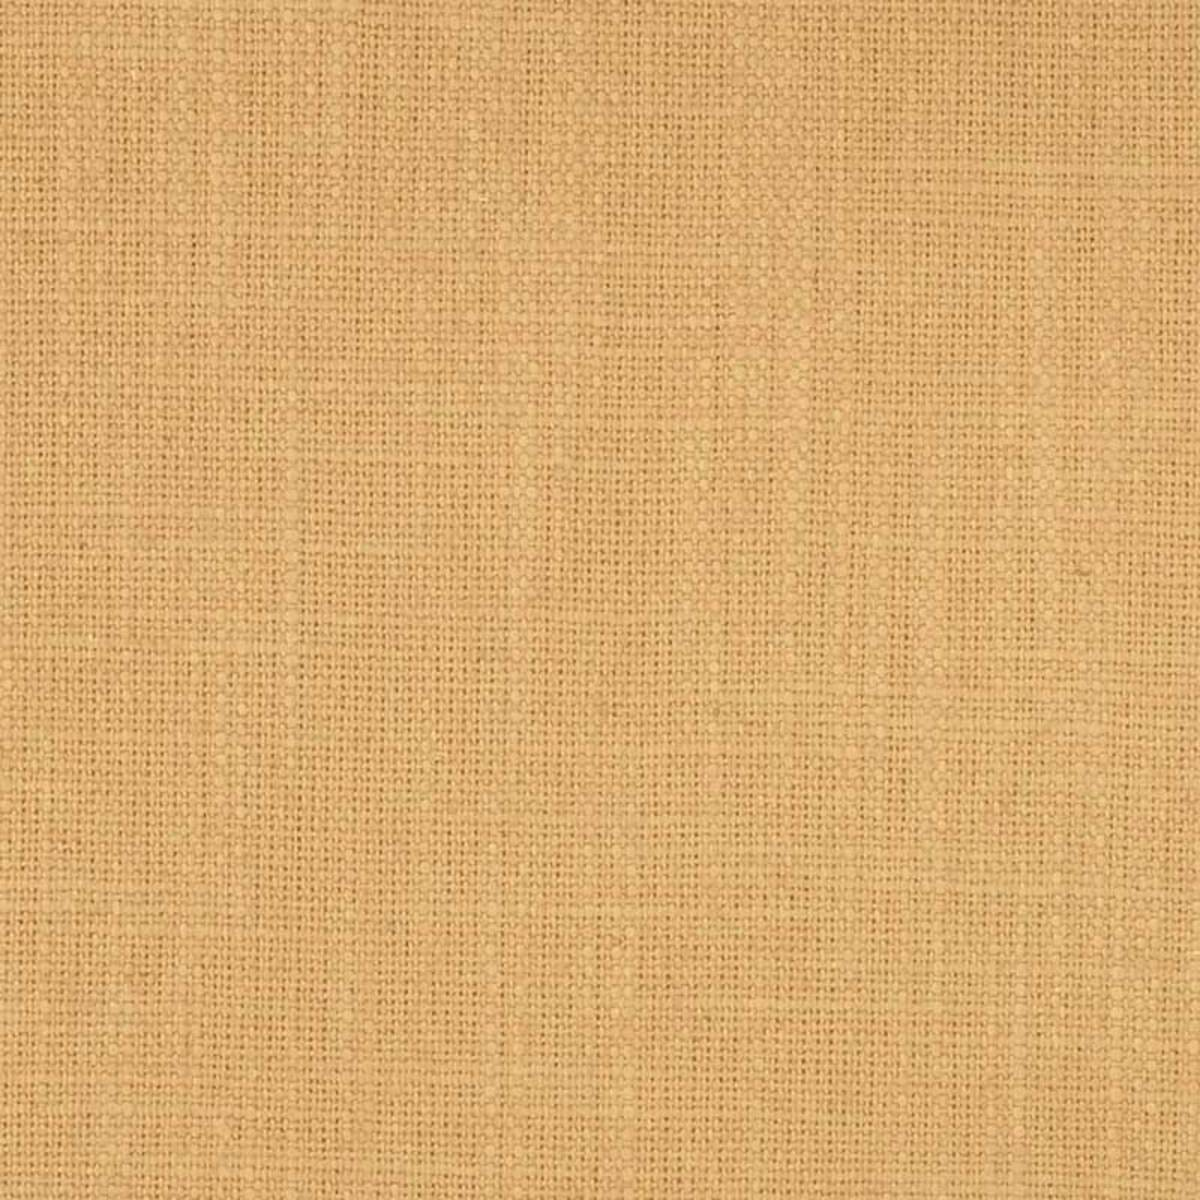 Heavy linen with a peel-away backing like this from Tri-Kes are available in bungalow-friendly colors.